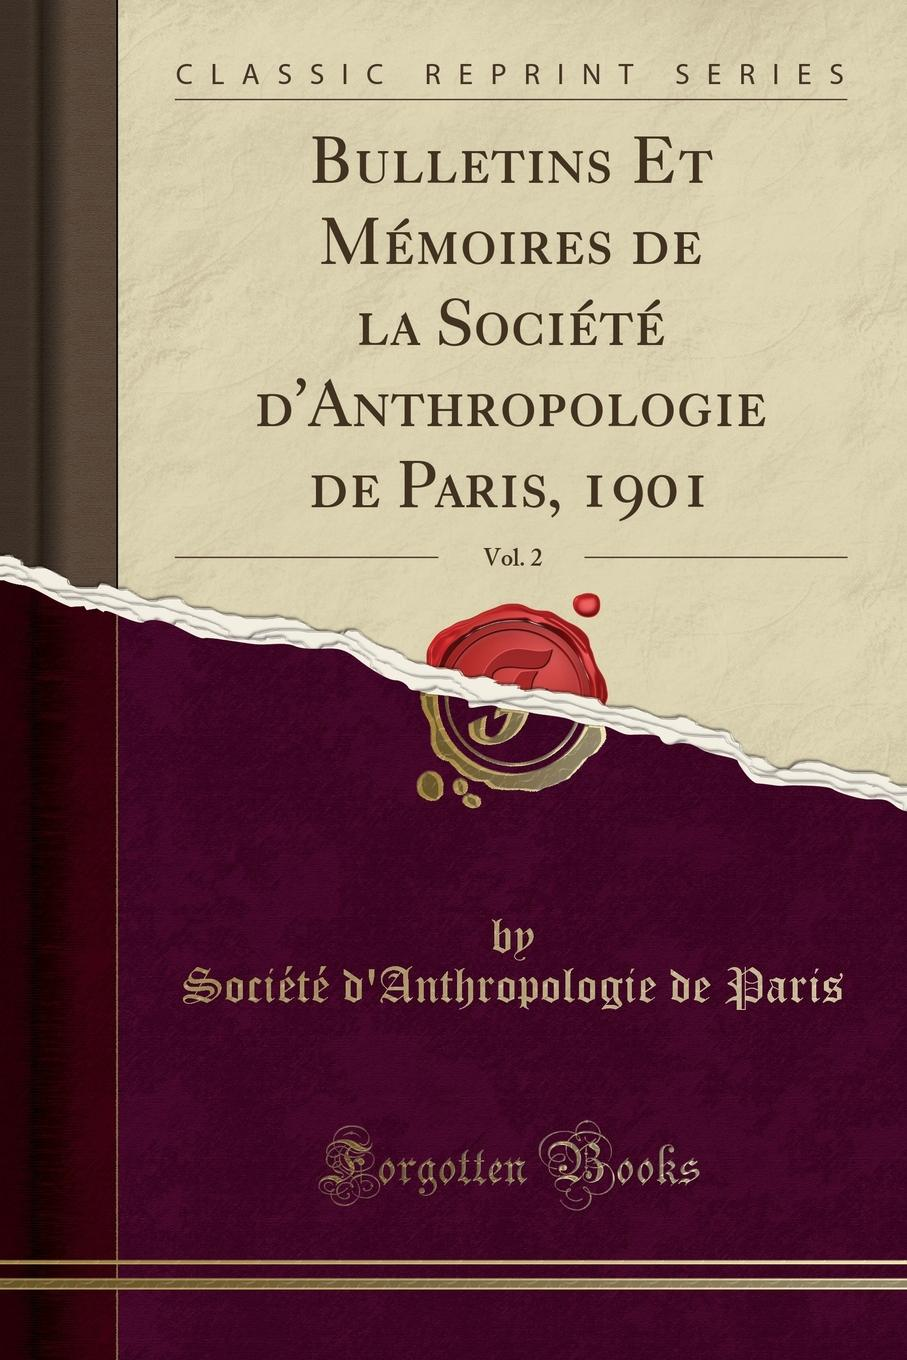 Société d'Anthropologie de Paris Bulletins Et Memoires de la Societe d.Anthropologie de Paris, 1901, Vol. 2 (Classic Reprint)